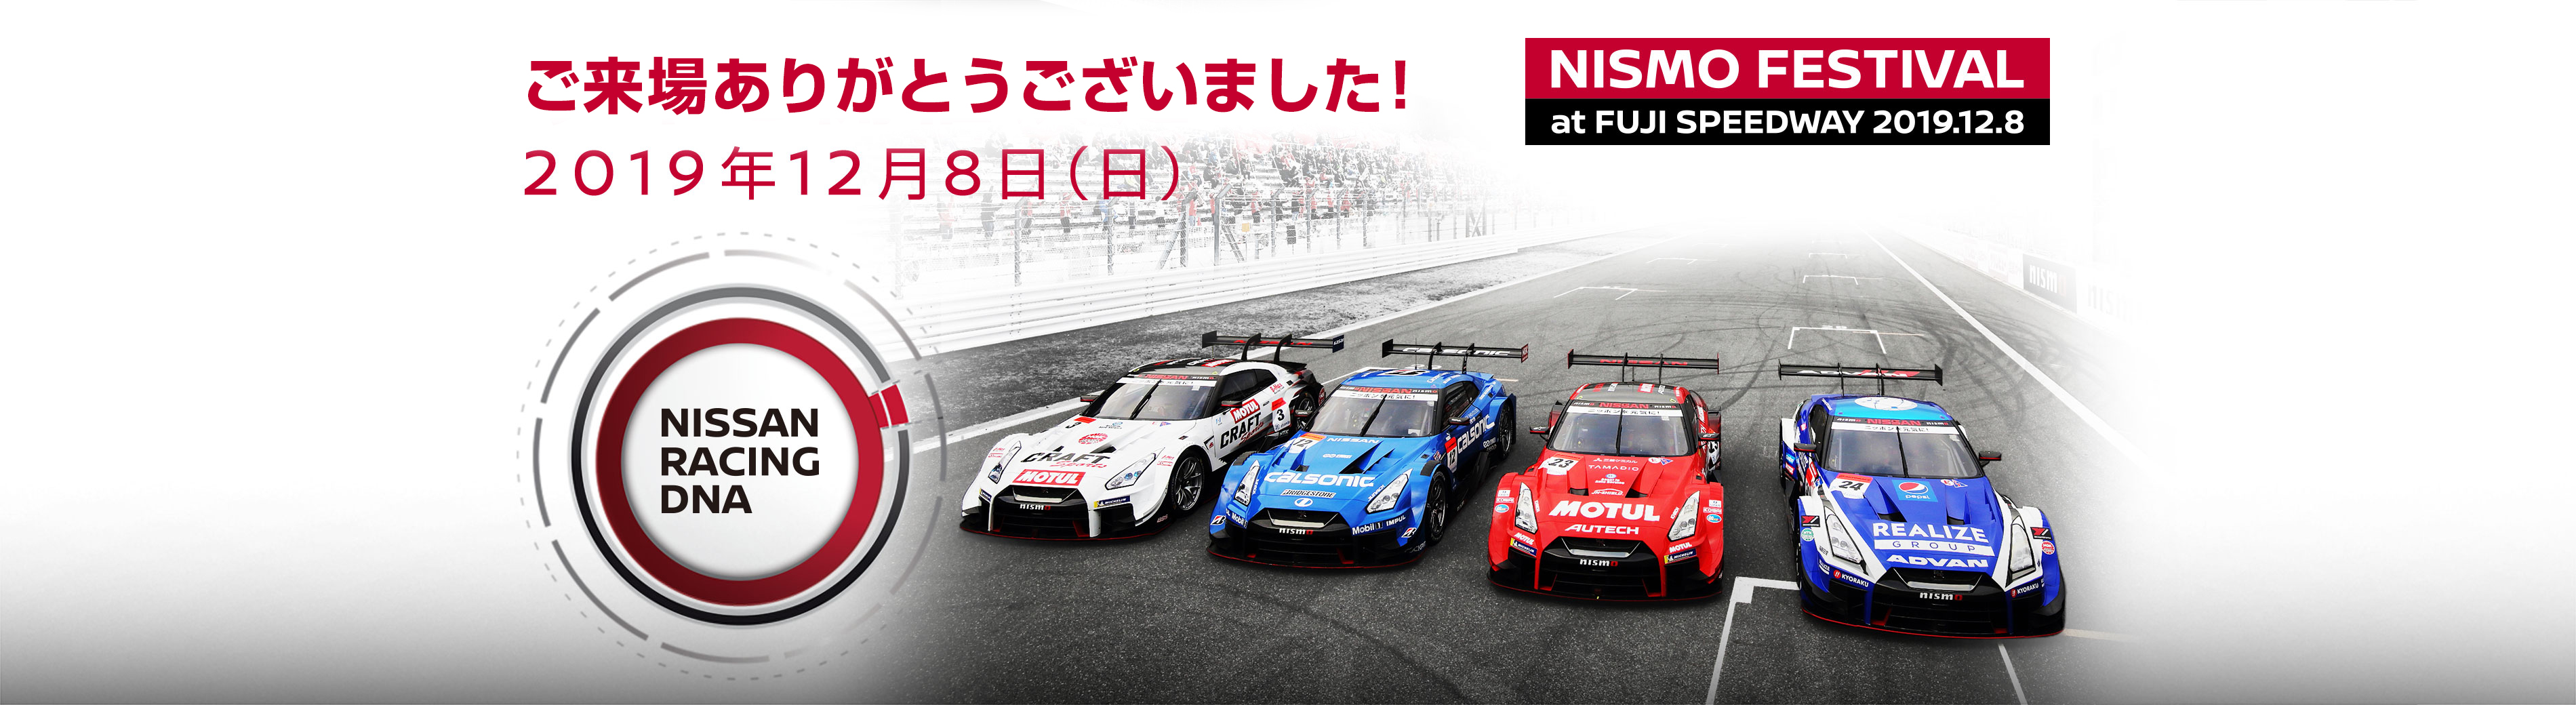 NISMO FESTIVAL at FUJI SPEEDWAY 2019.12.8 今年も開催決定!!2019年12月8日